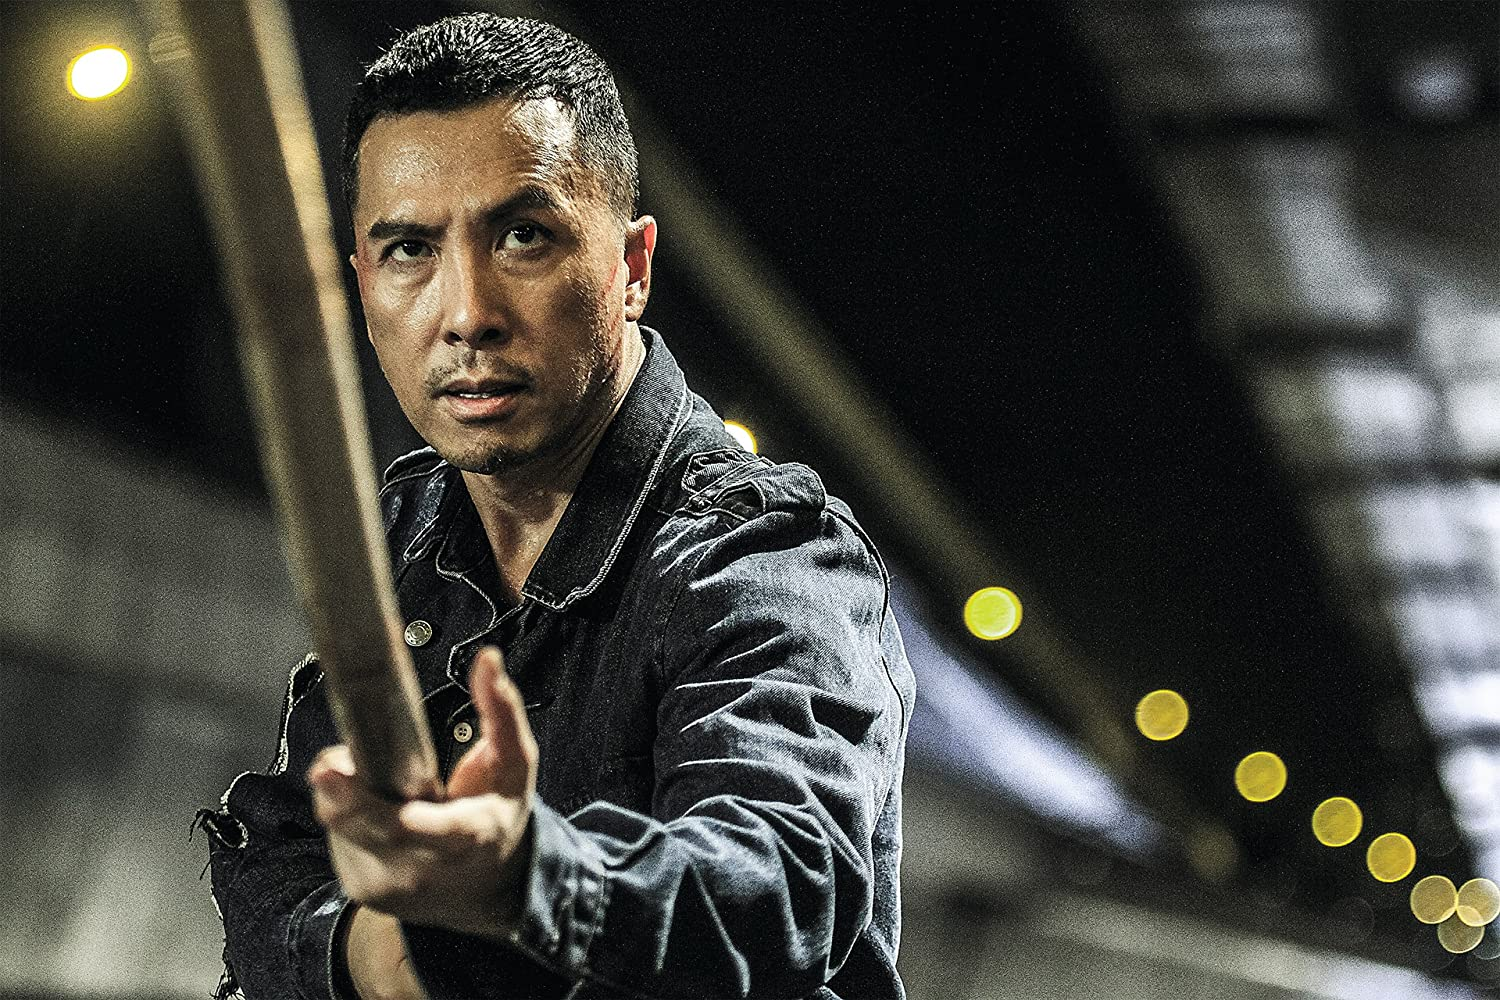 Donnie Yen in Yi ge ren de wu lin (2014)